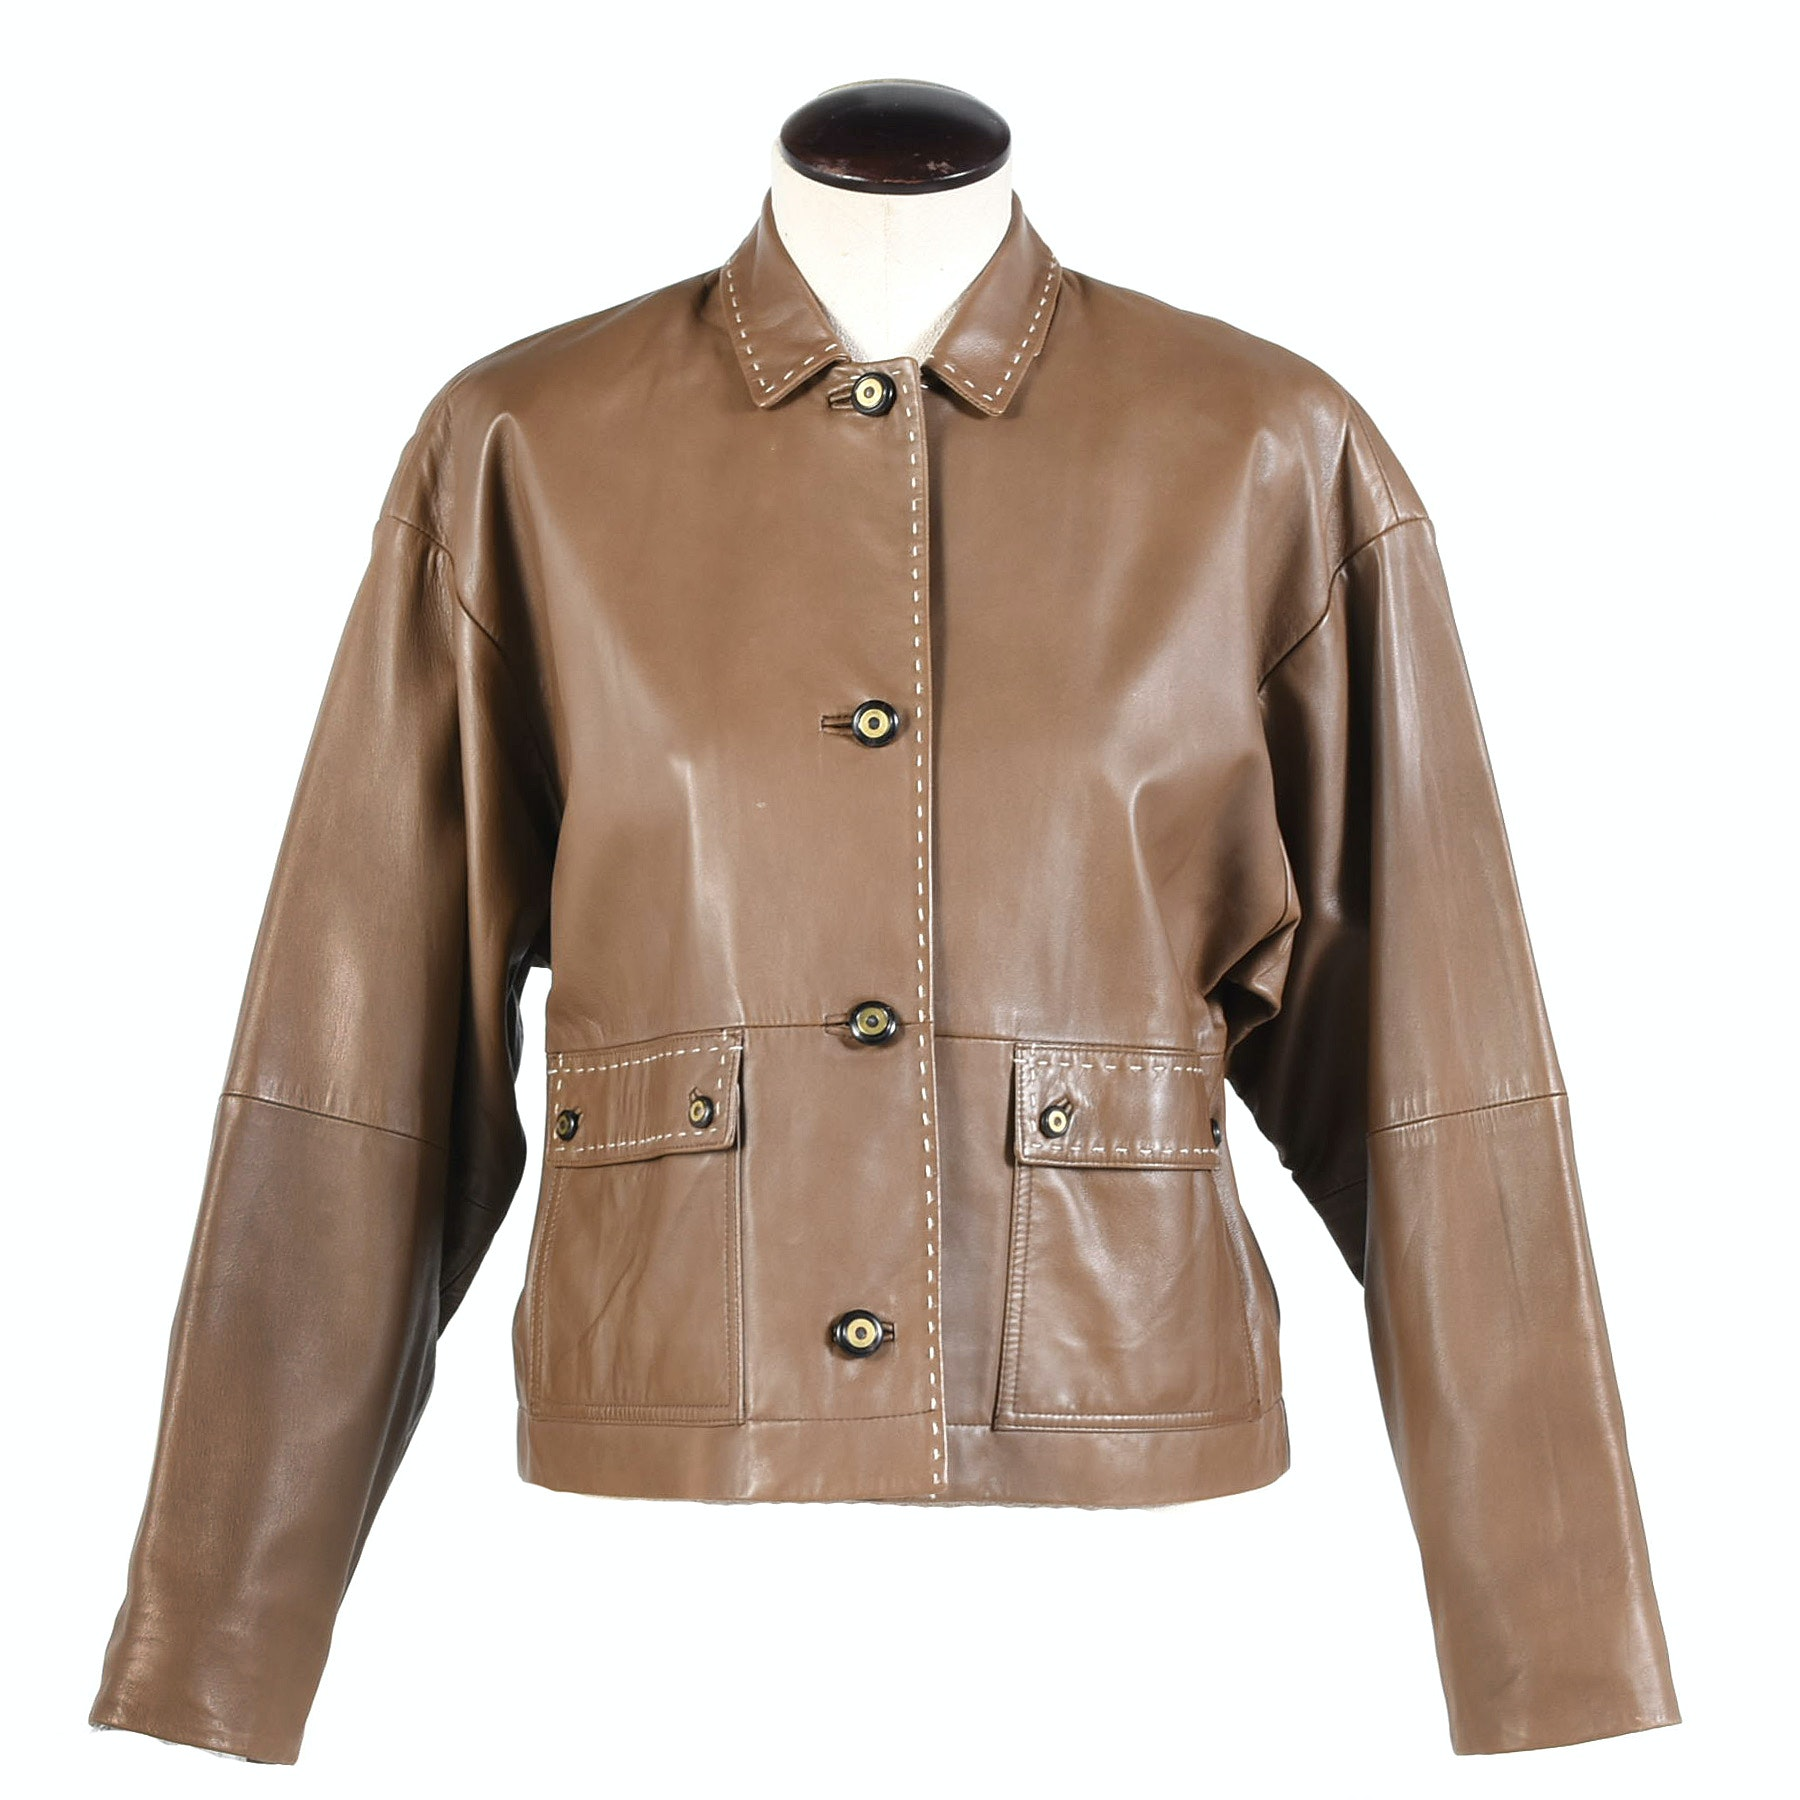 Women's Worth Taupe Leather Jacket with Top Stitched Detailing